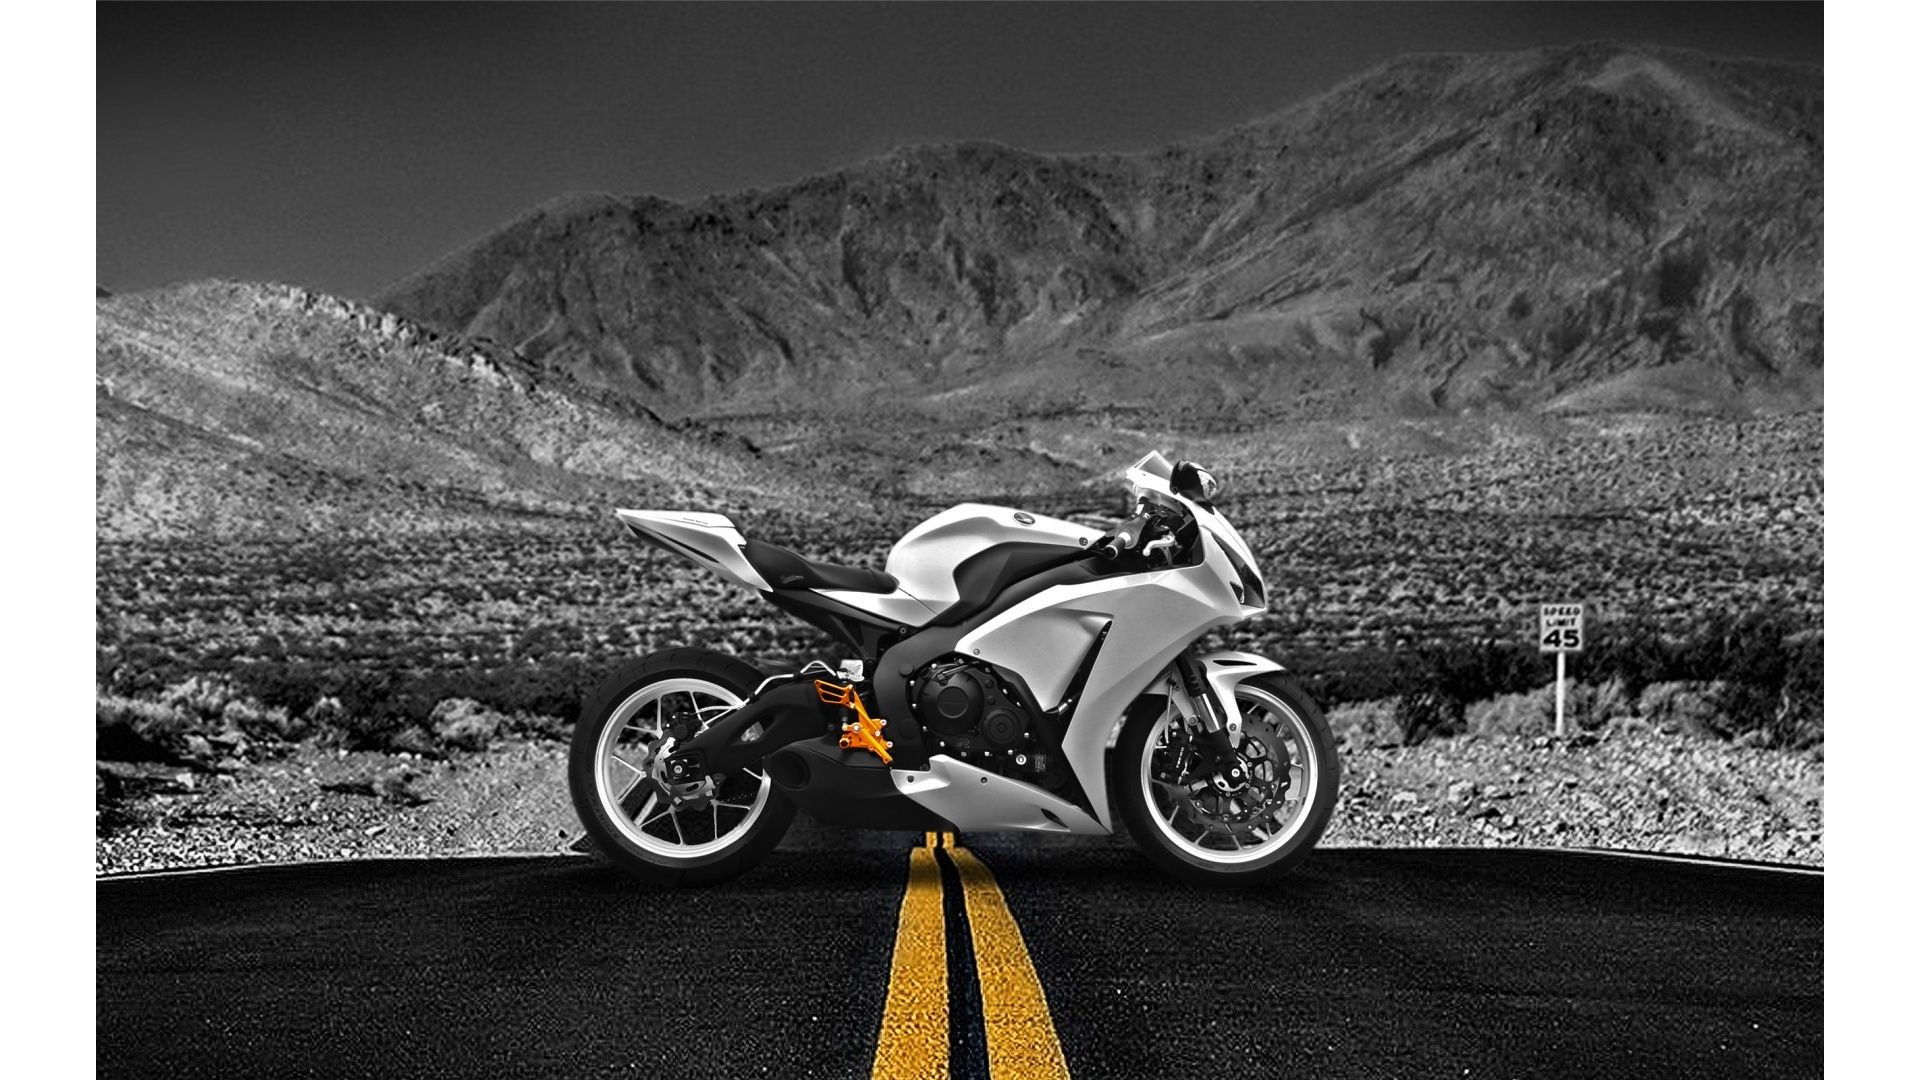 Res: 1920x1080, Are you looking for Honda CBR1000RR HD Wallpapers? Download latest  collection of Honda CBR1000RR HD Wallpapers from our website Wallpapers111